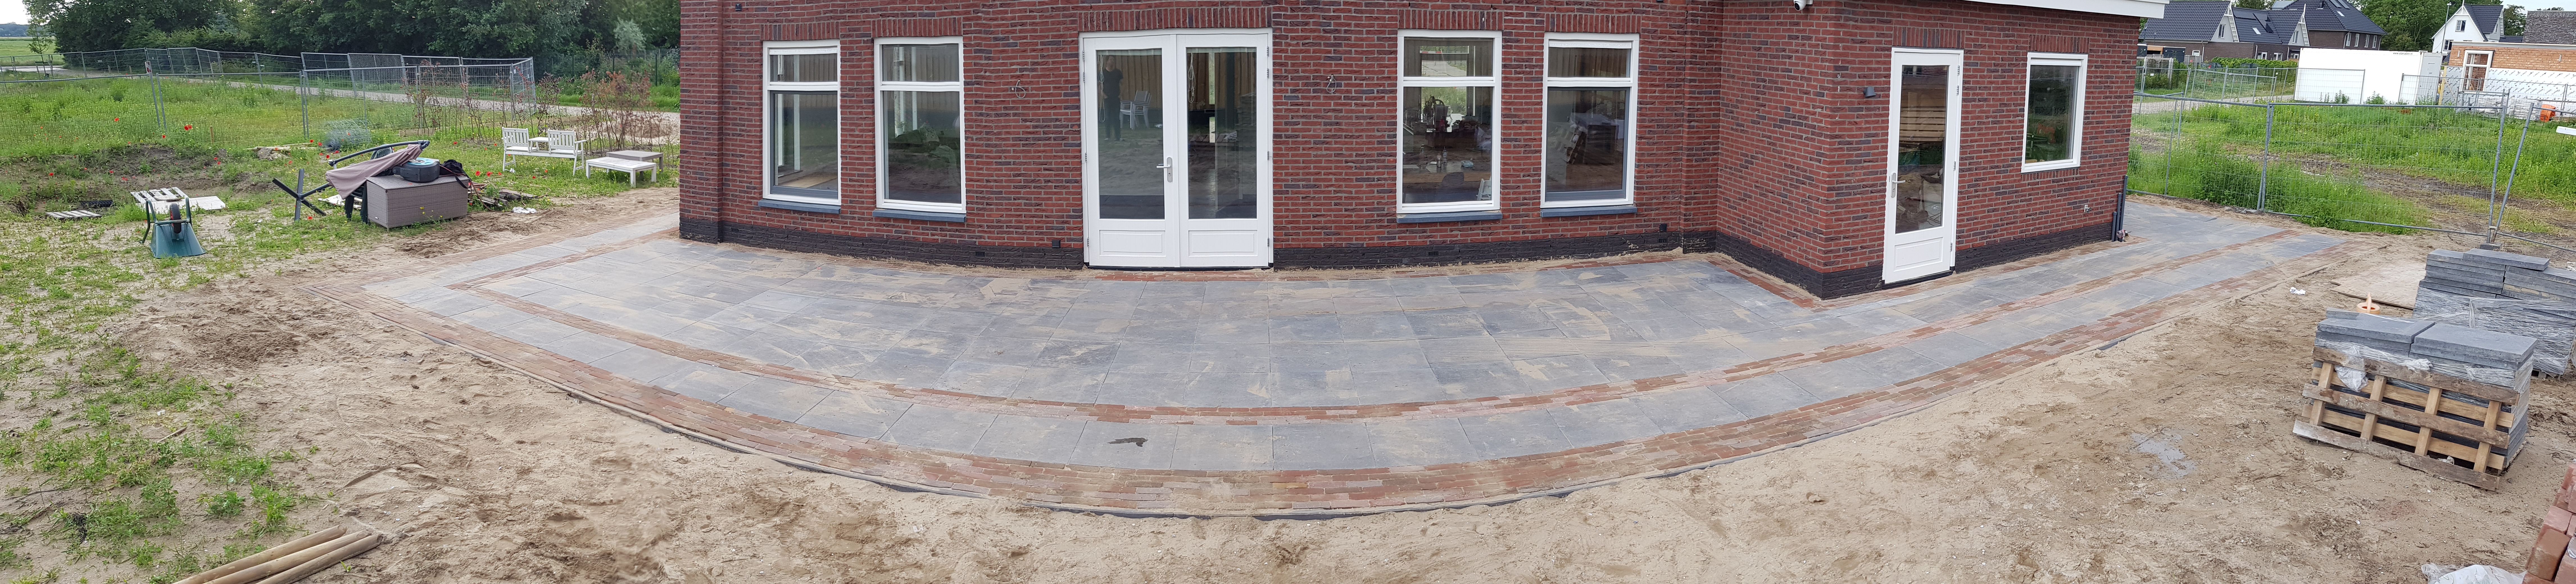 Project in Limmen